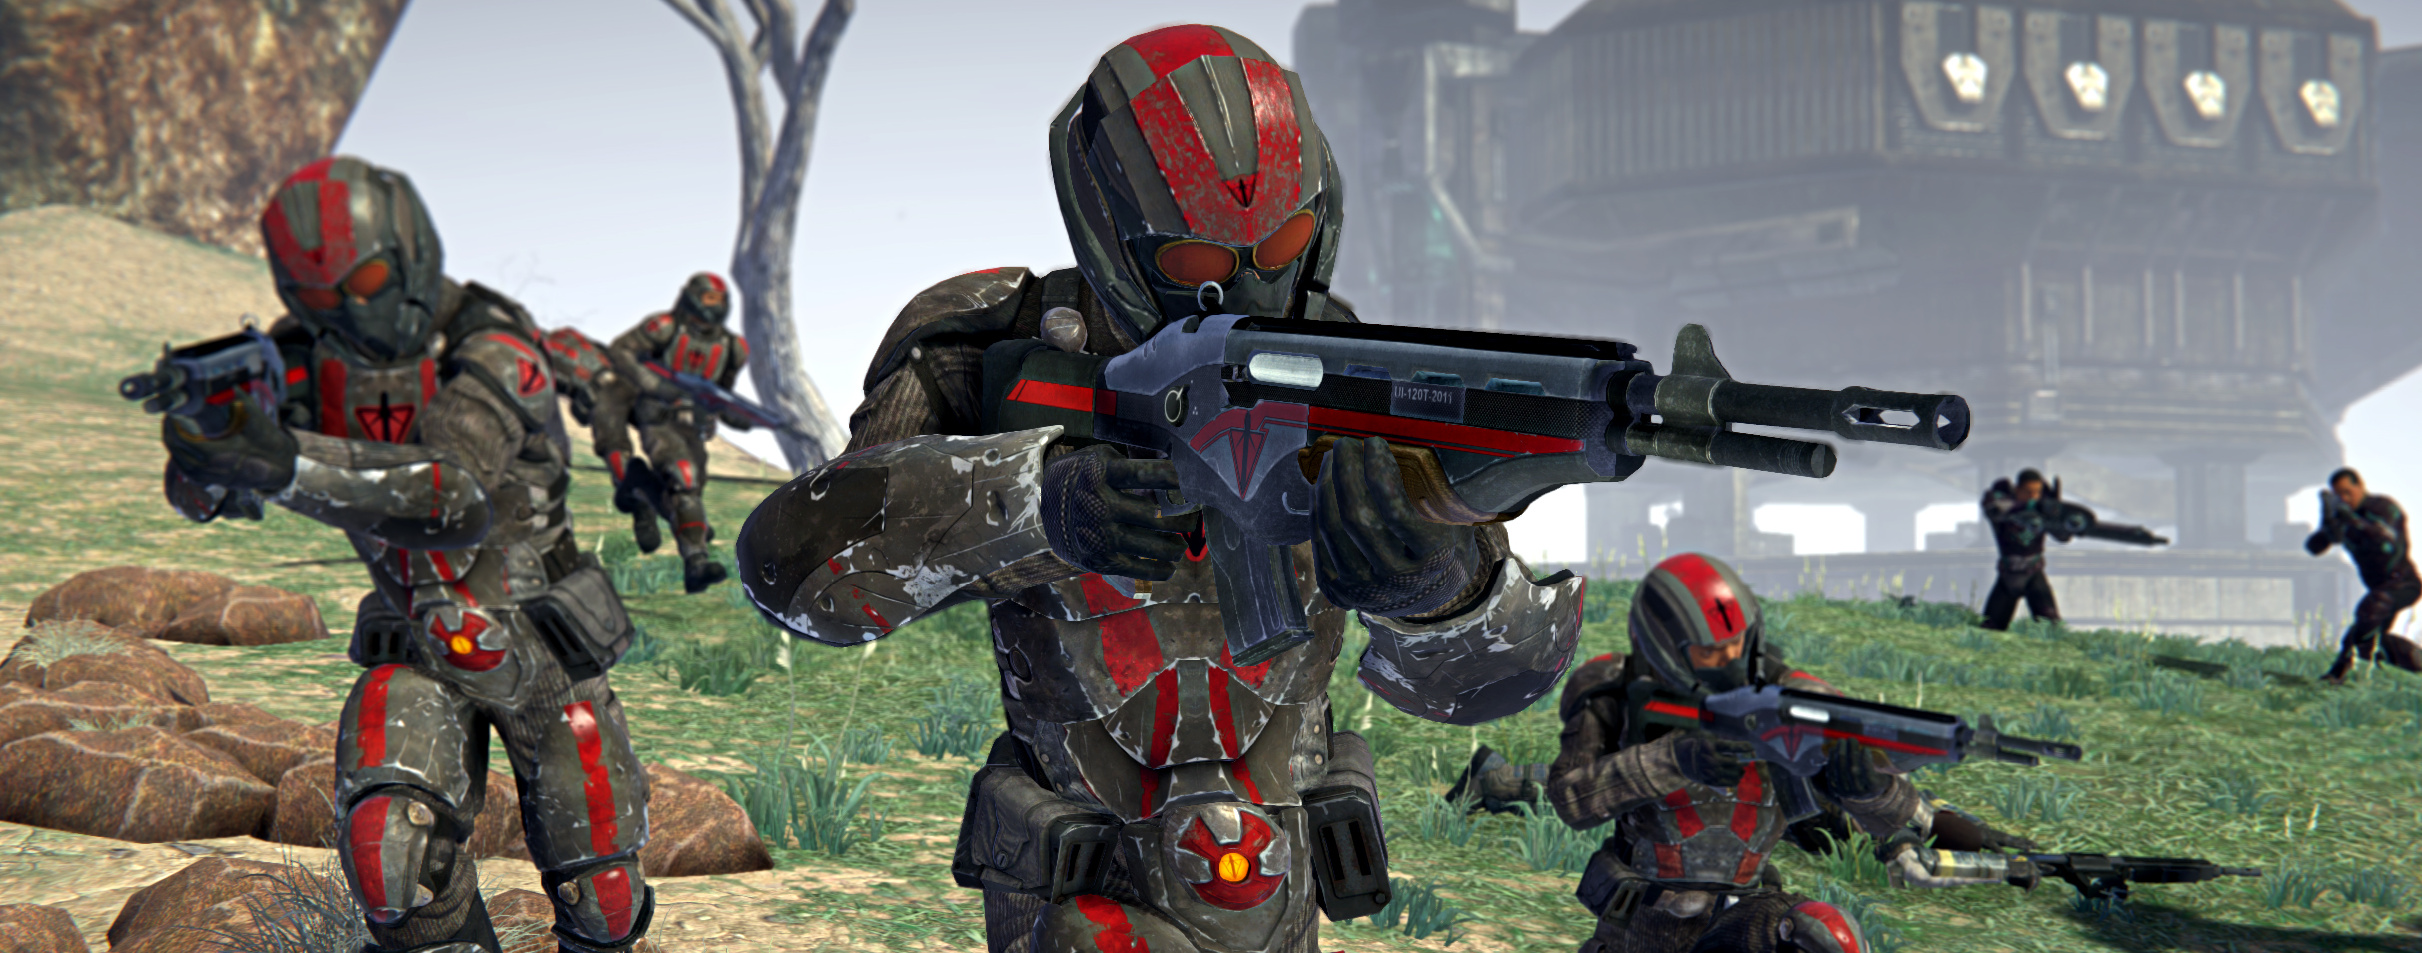 Planetside 2 players are organising a record breaking ...